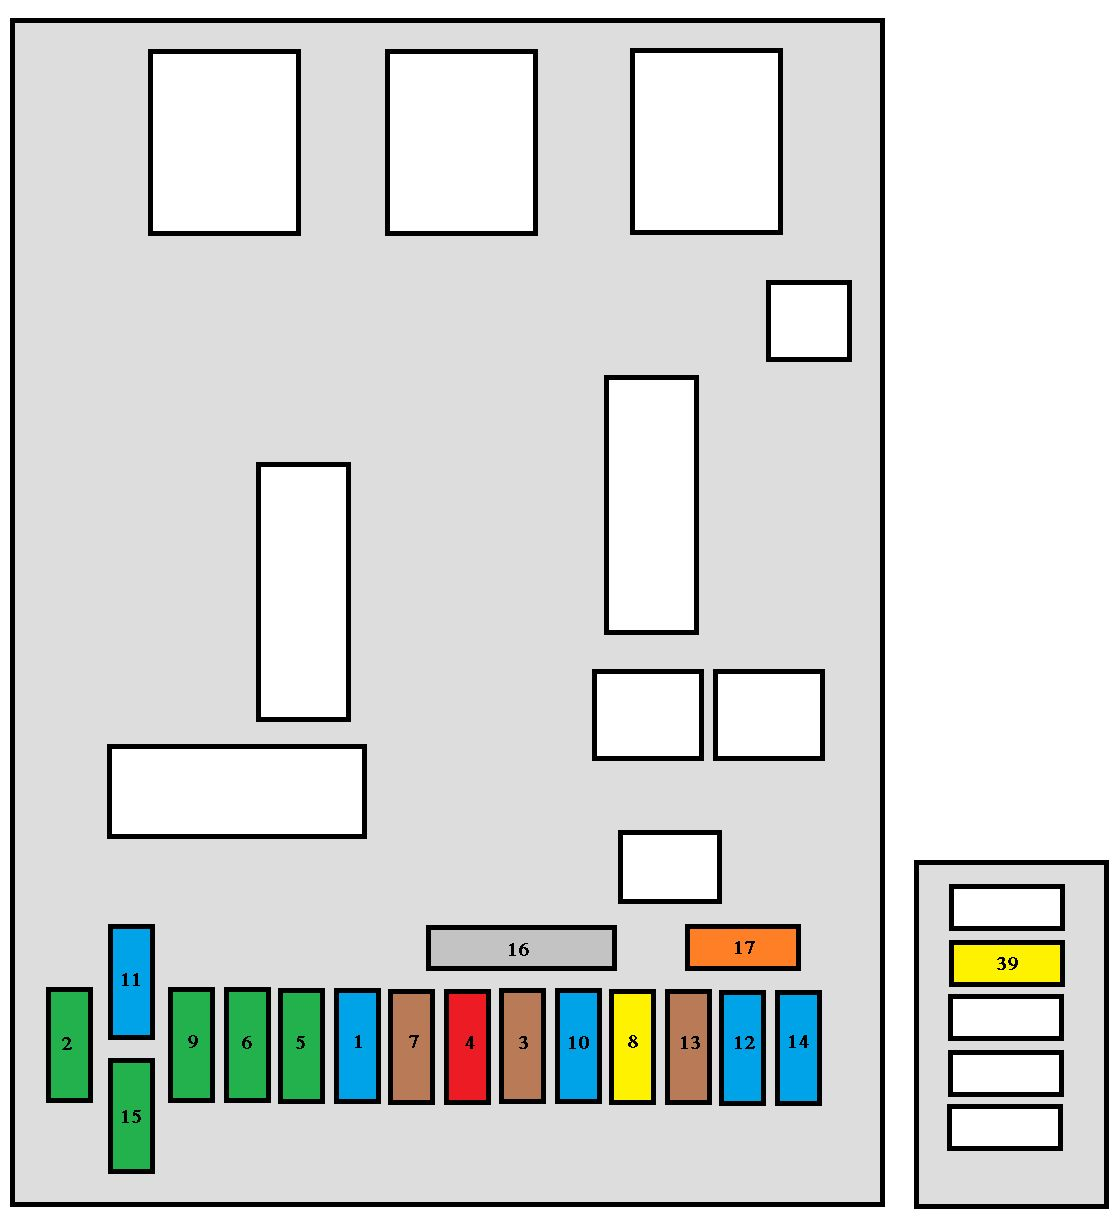 peugeot fuse box 207 - wiring diagram peugeot 1007 fuse box diagram peugeot 106 fuse box diagram